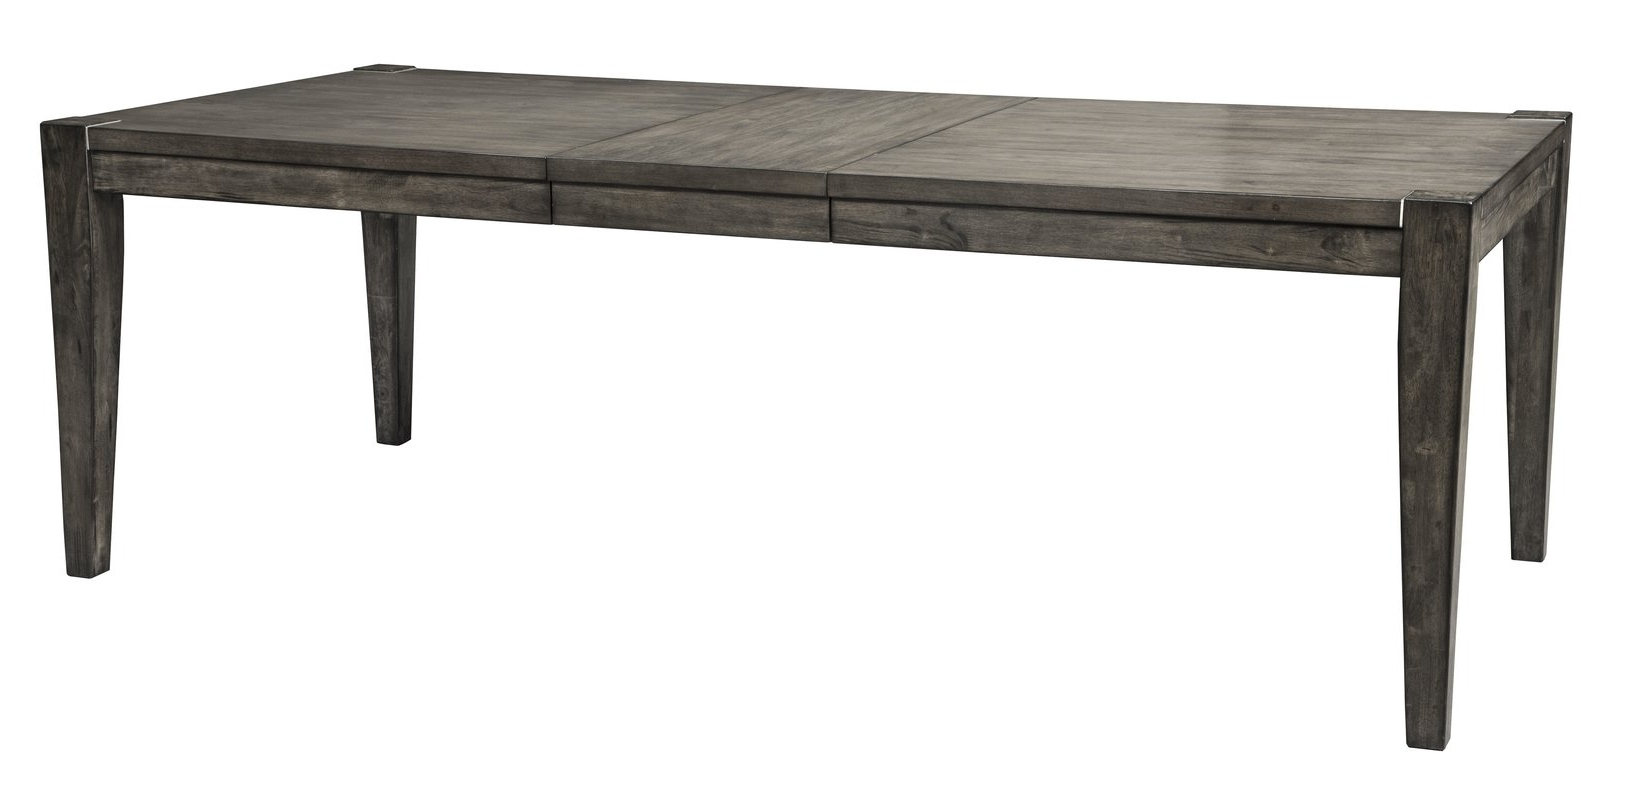 Wayfair With Well Known Bale Rustic Grey Dining Tables (View 24 of 25)